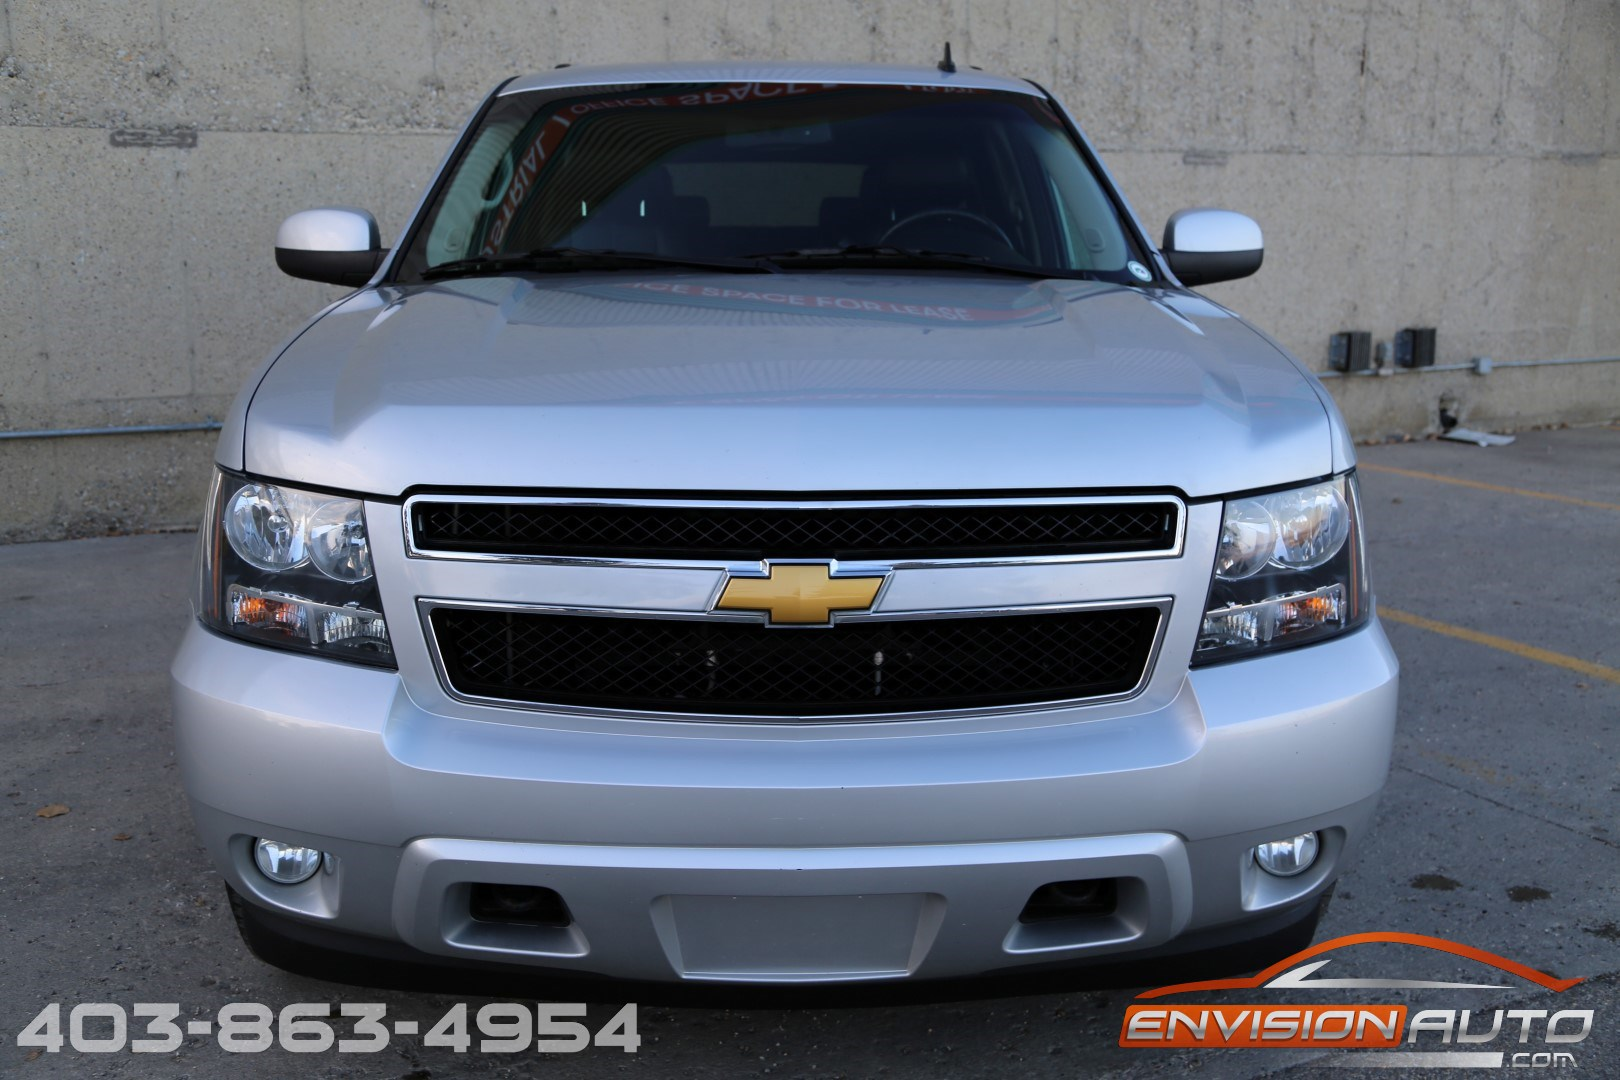 2012 chevrolet suburban lt 4 4 htd leather clean history envision auto calgary highline. Black Bedroom Furniture Sets. Home Design Ideas